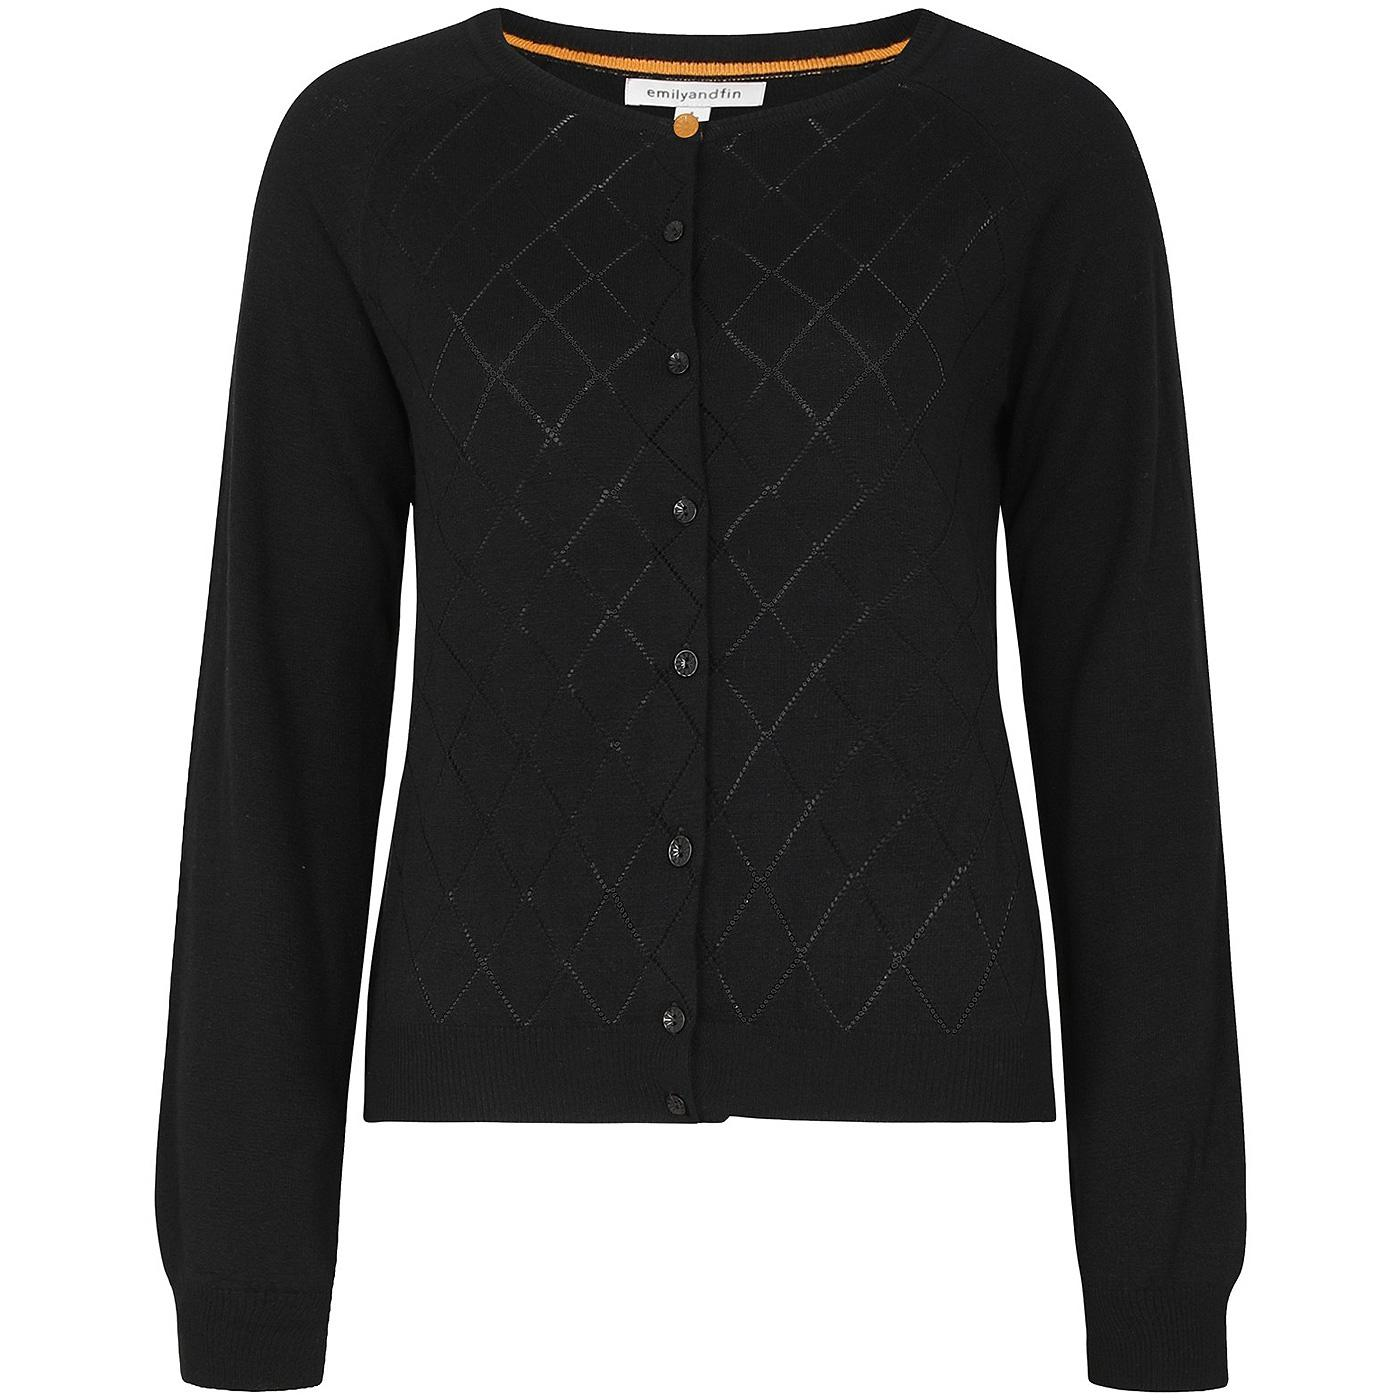 Tess EMILY AND FIN Argyle Pointelle Cardigan BLACK